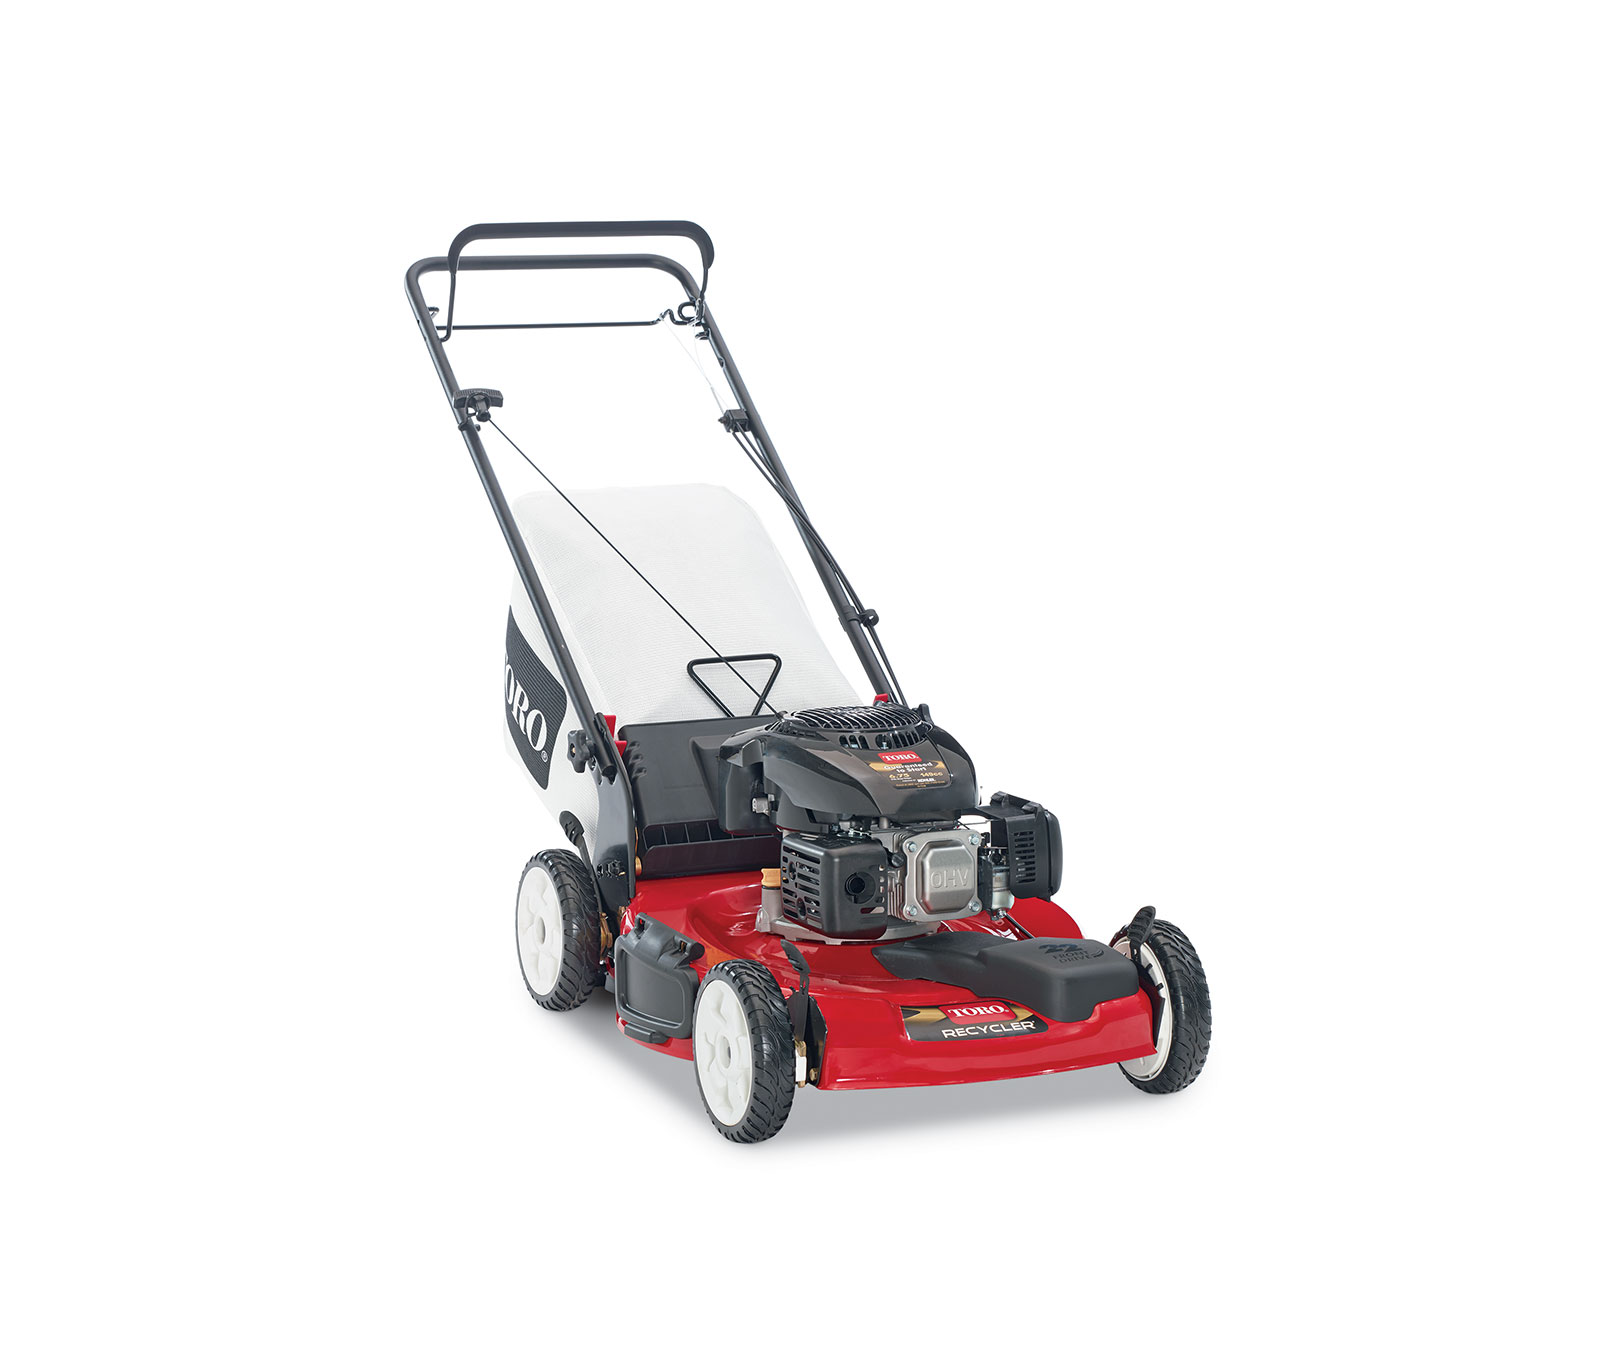 toro 22 56 cm variable speed lawn mower rh toro com toro recycler 22 inch owner's manual toro personal pace recycler 22 owners manual